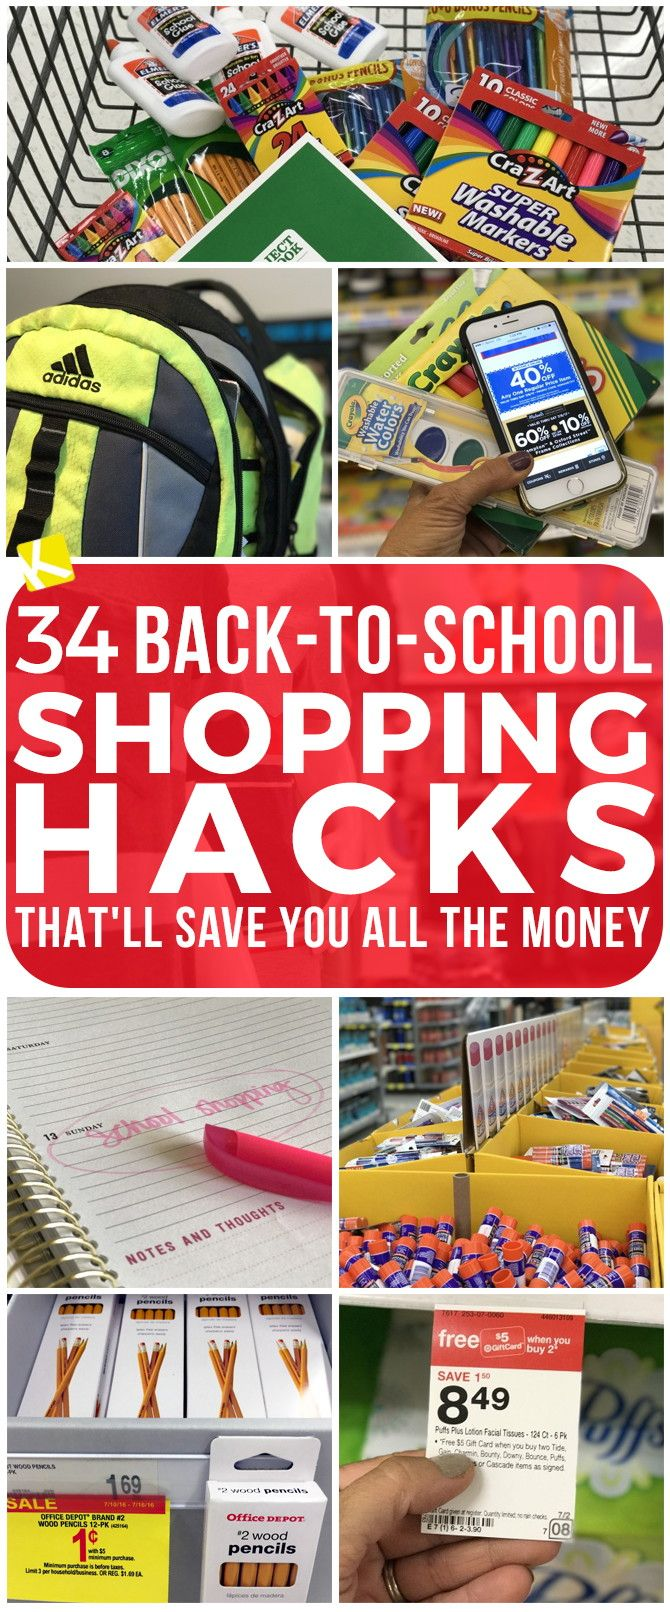 Check out these back-to-school shopping hacks to save you all the money this summer.